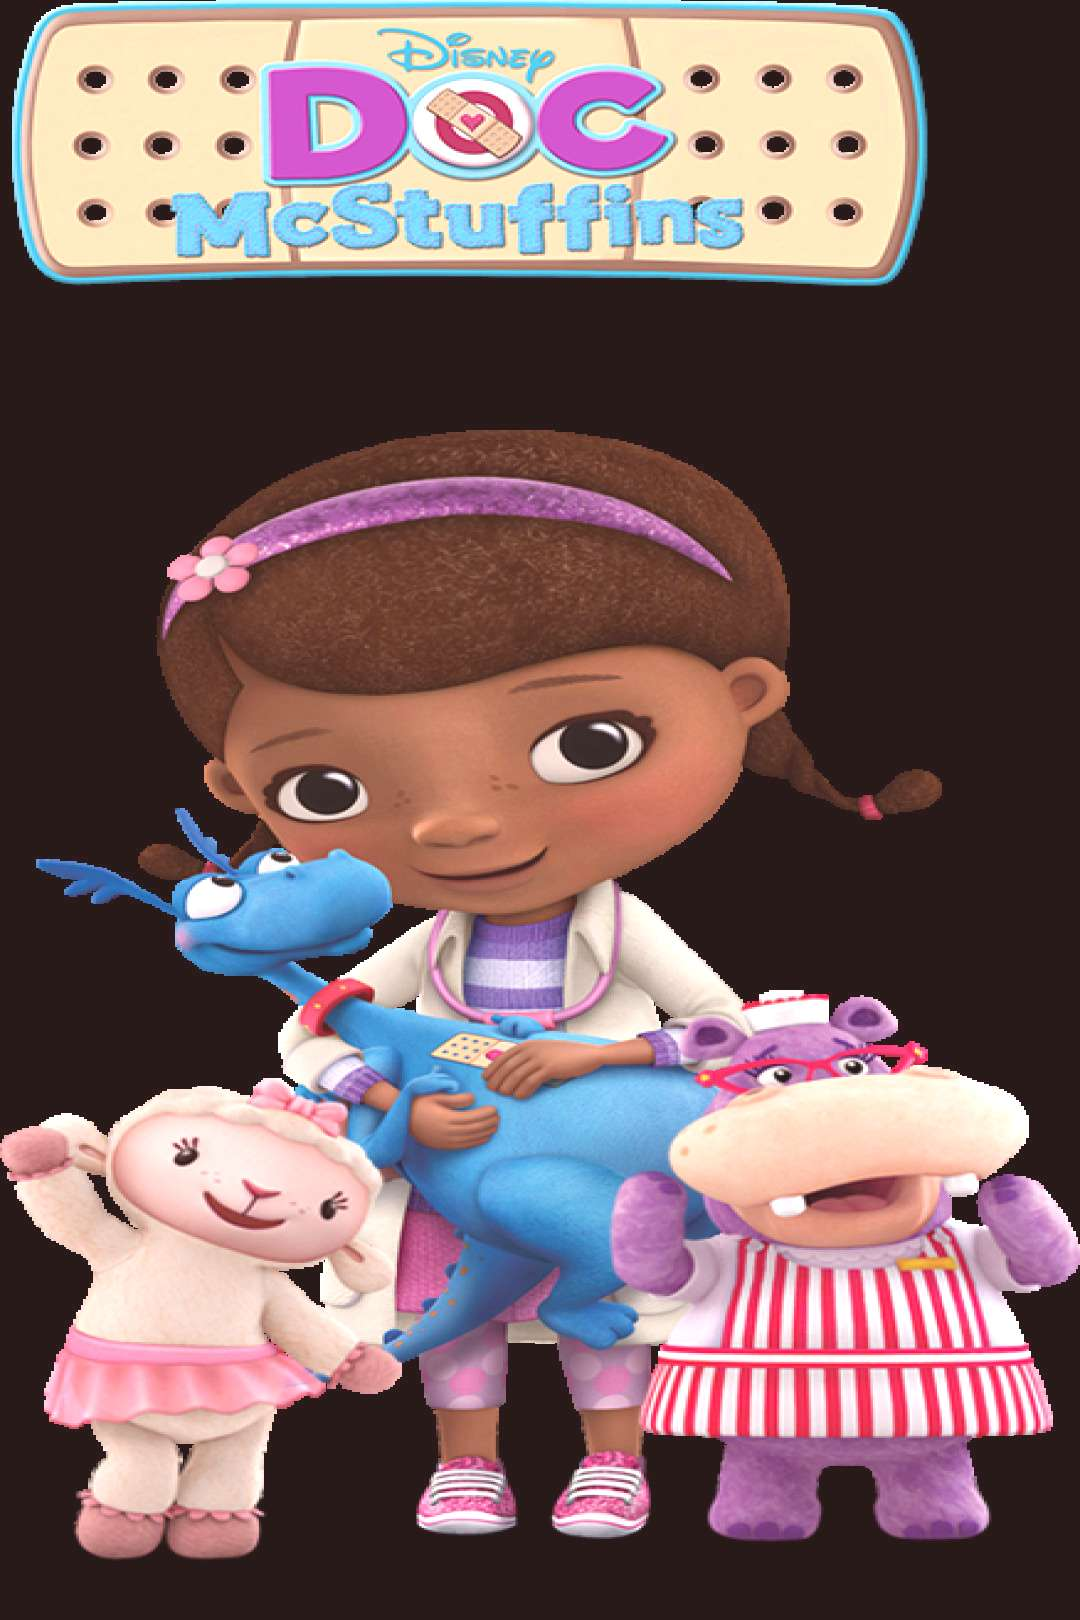 Doc McStuffins - one of Henry's favorites, doesn't seem to mind the slightly girlish (pinkish) over